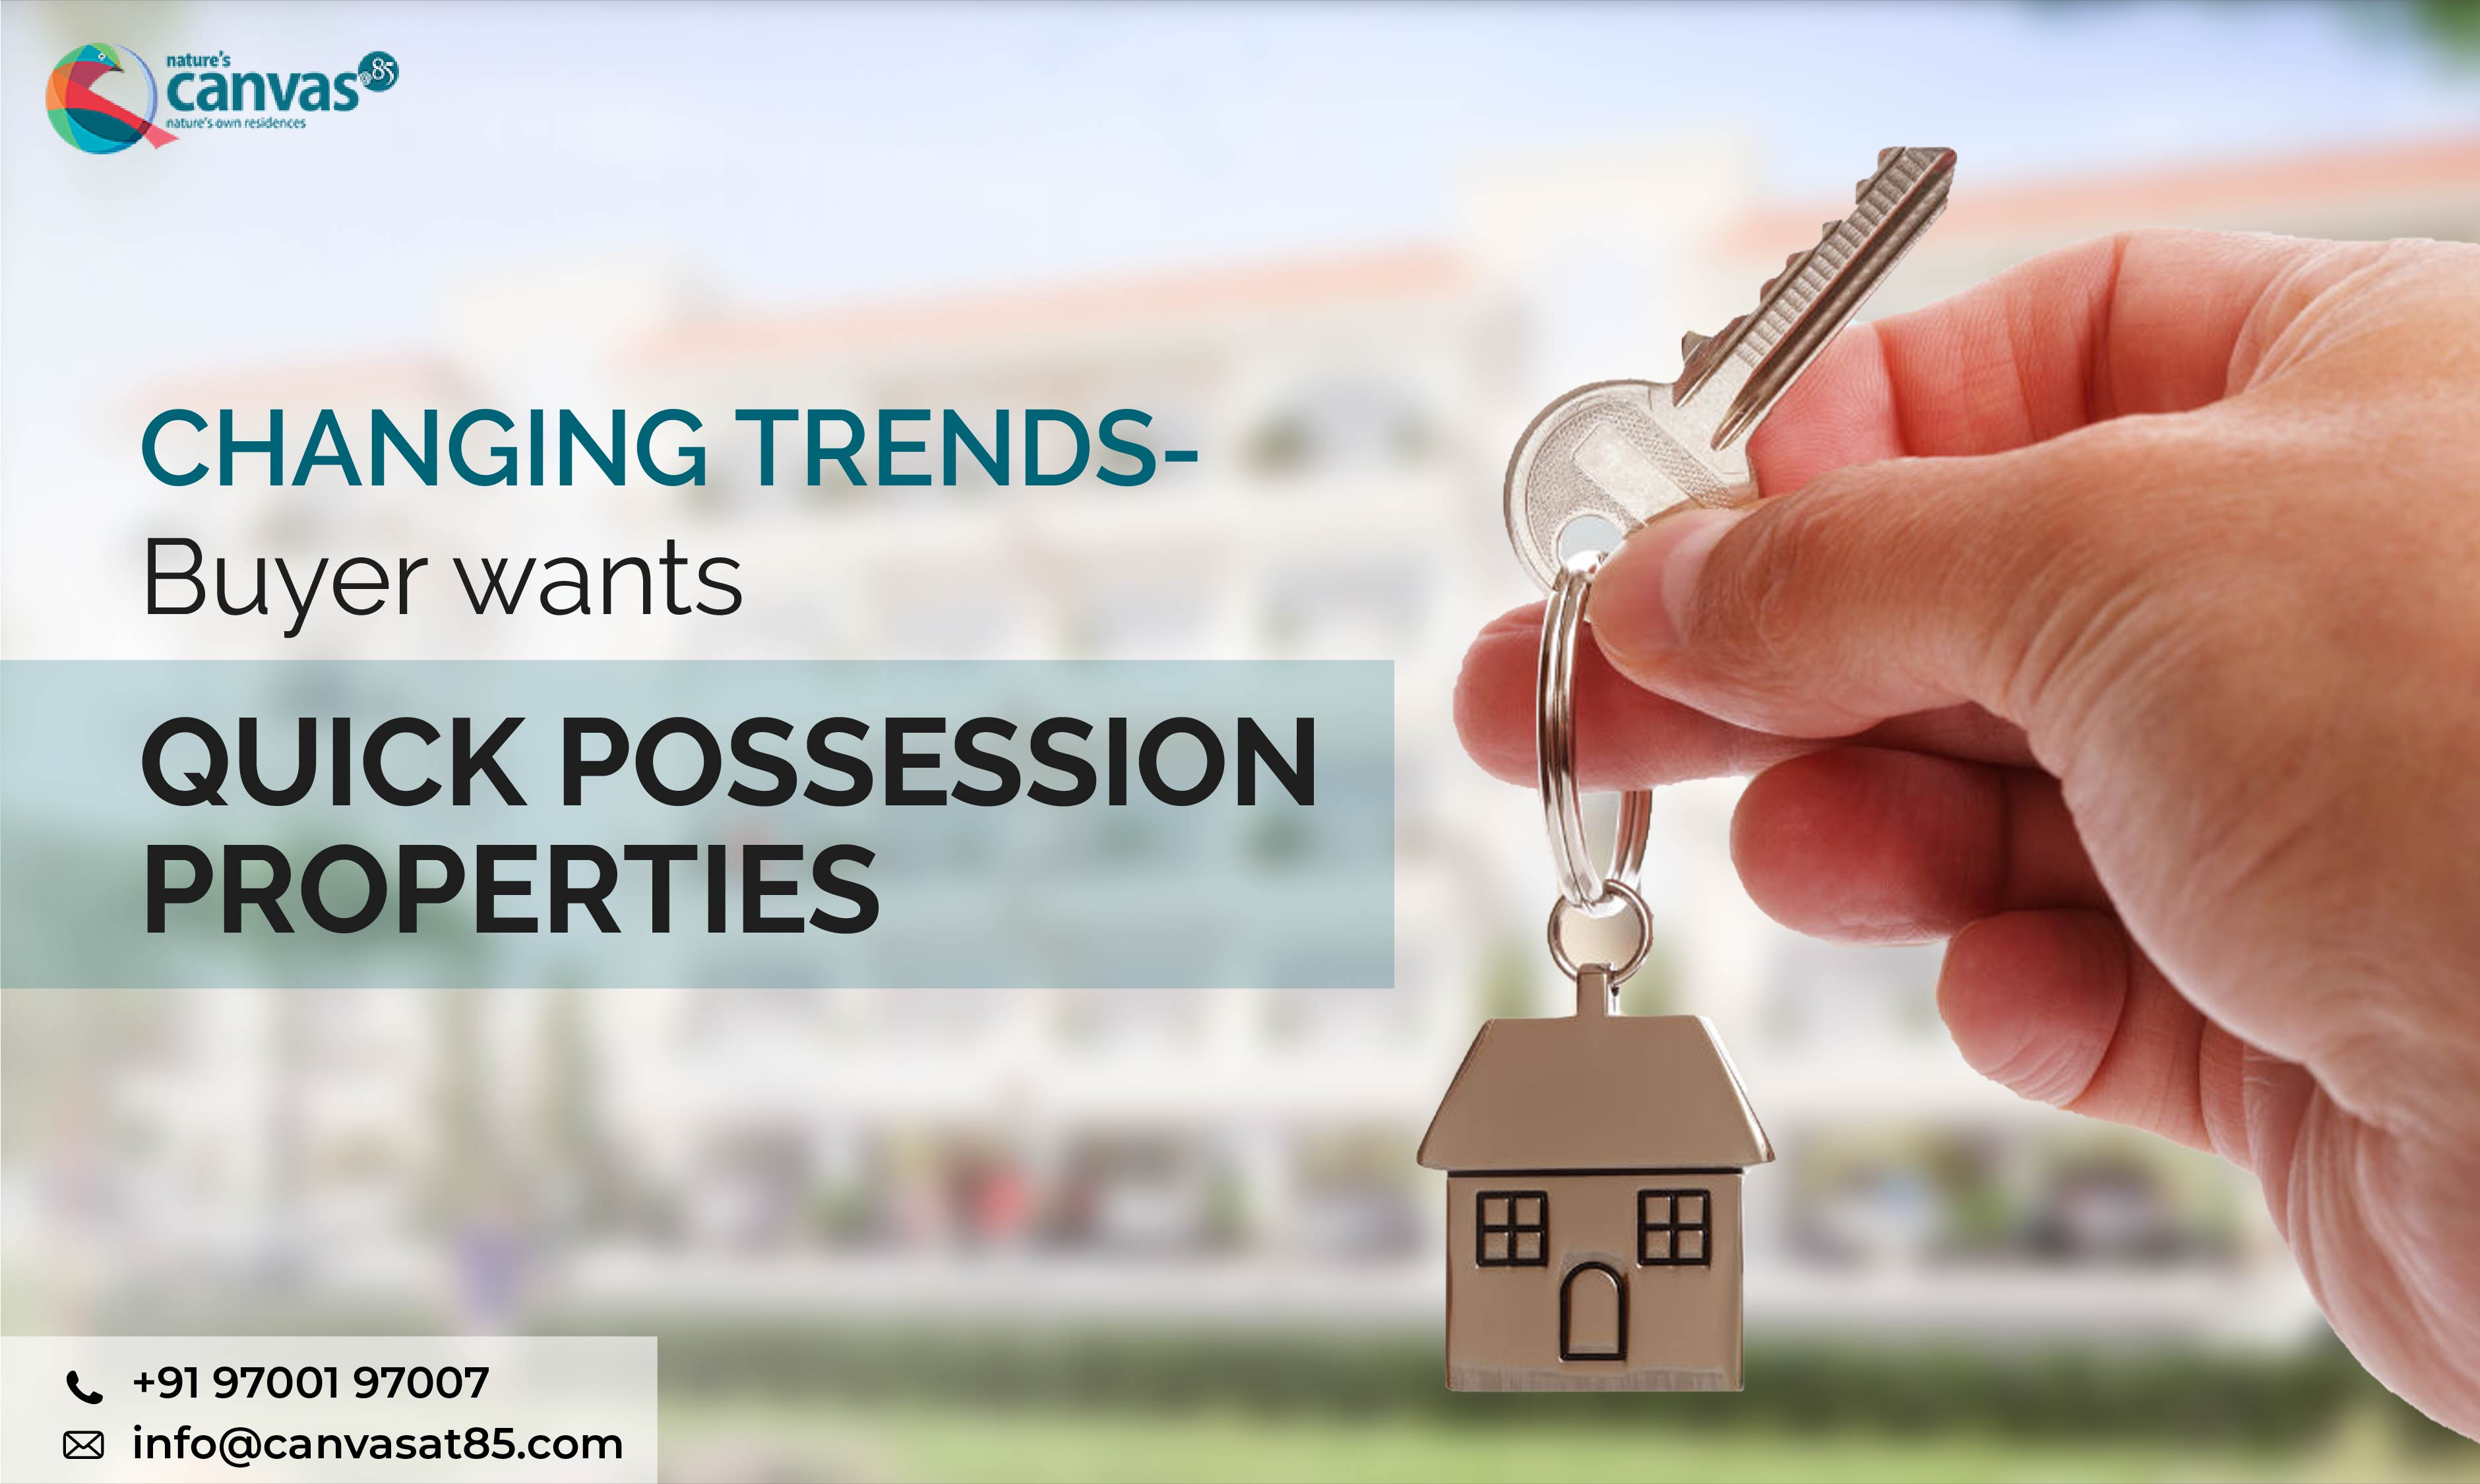 CHANGING TRENDS- Buyer wants QUICK POSSESSION PROPERTIES